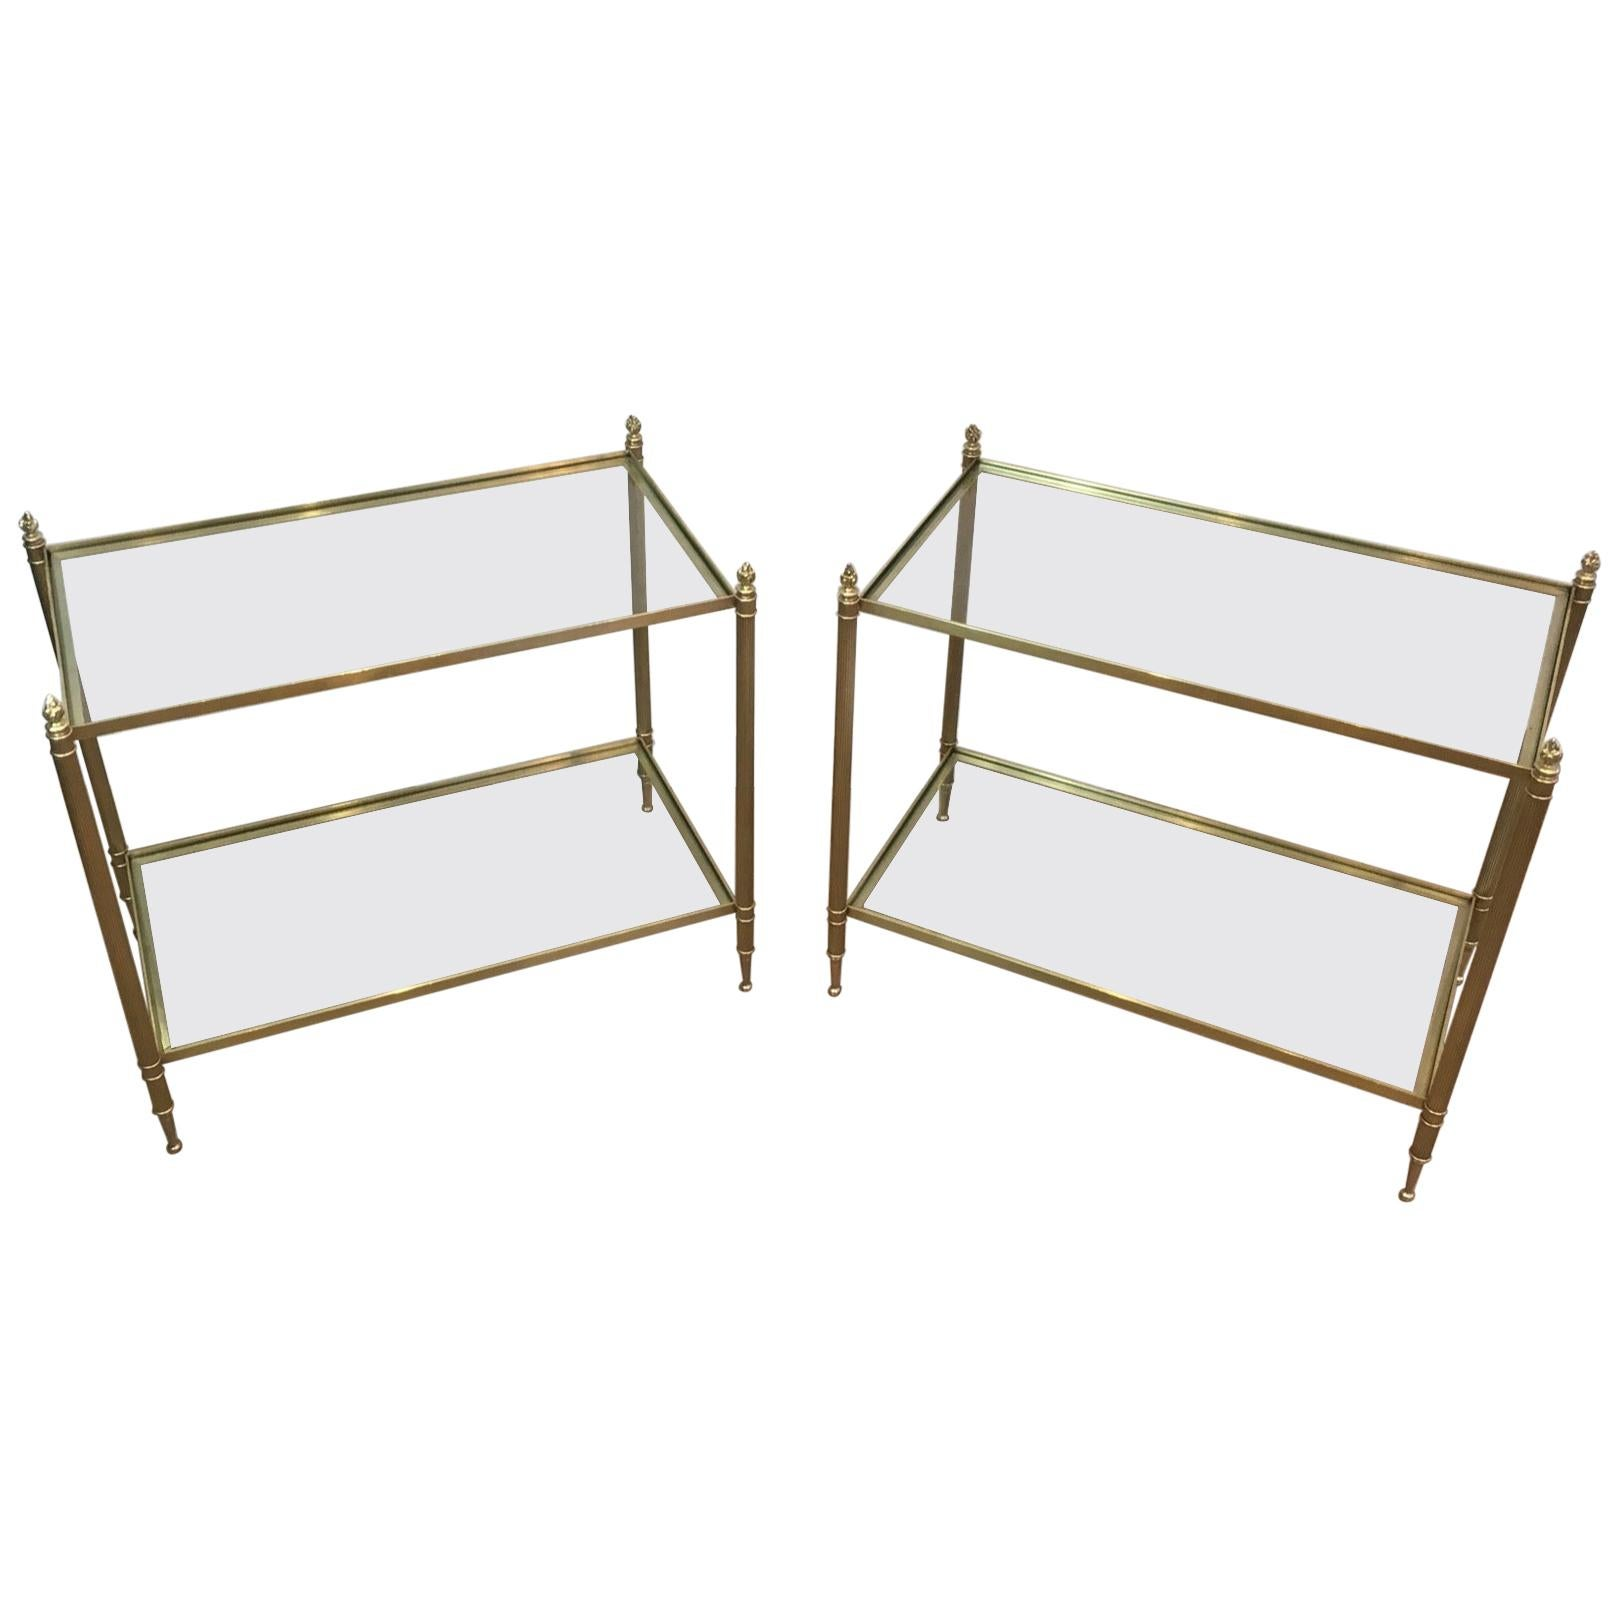 Maison Bagués, Faux Bamboo Bronze Side Table with Original Eglomised Mirror, Fre